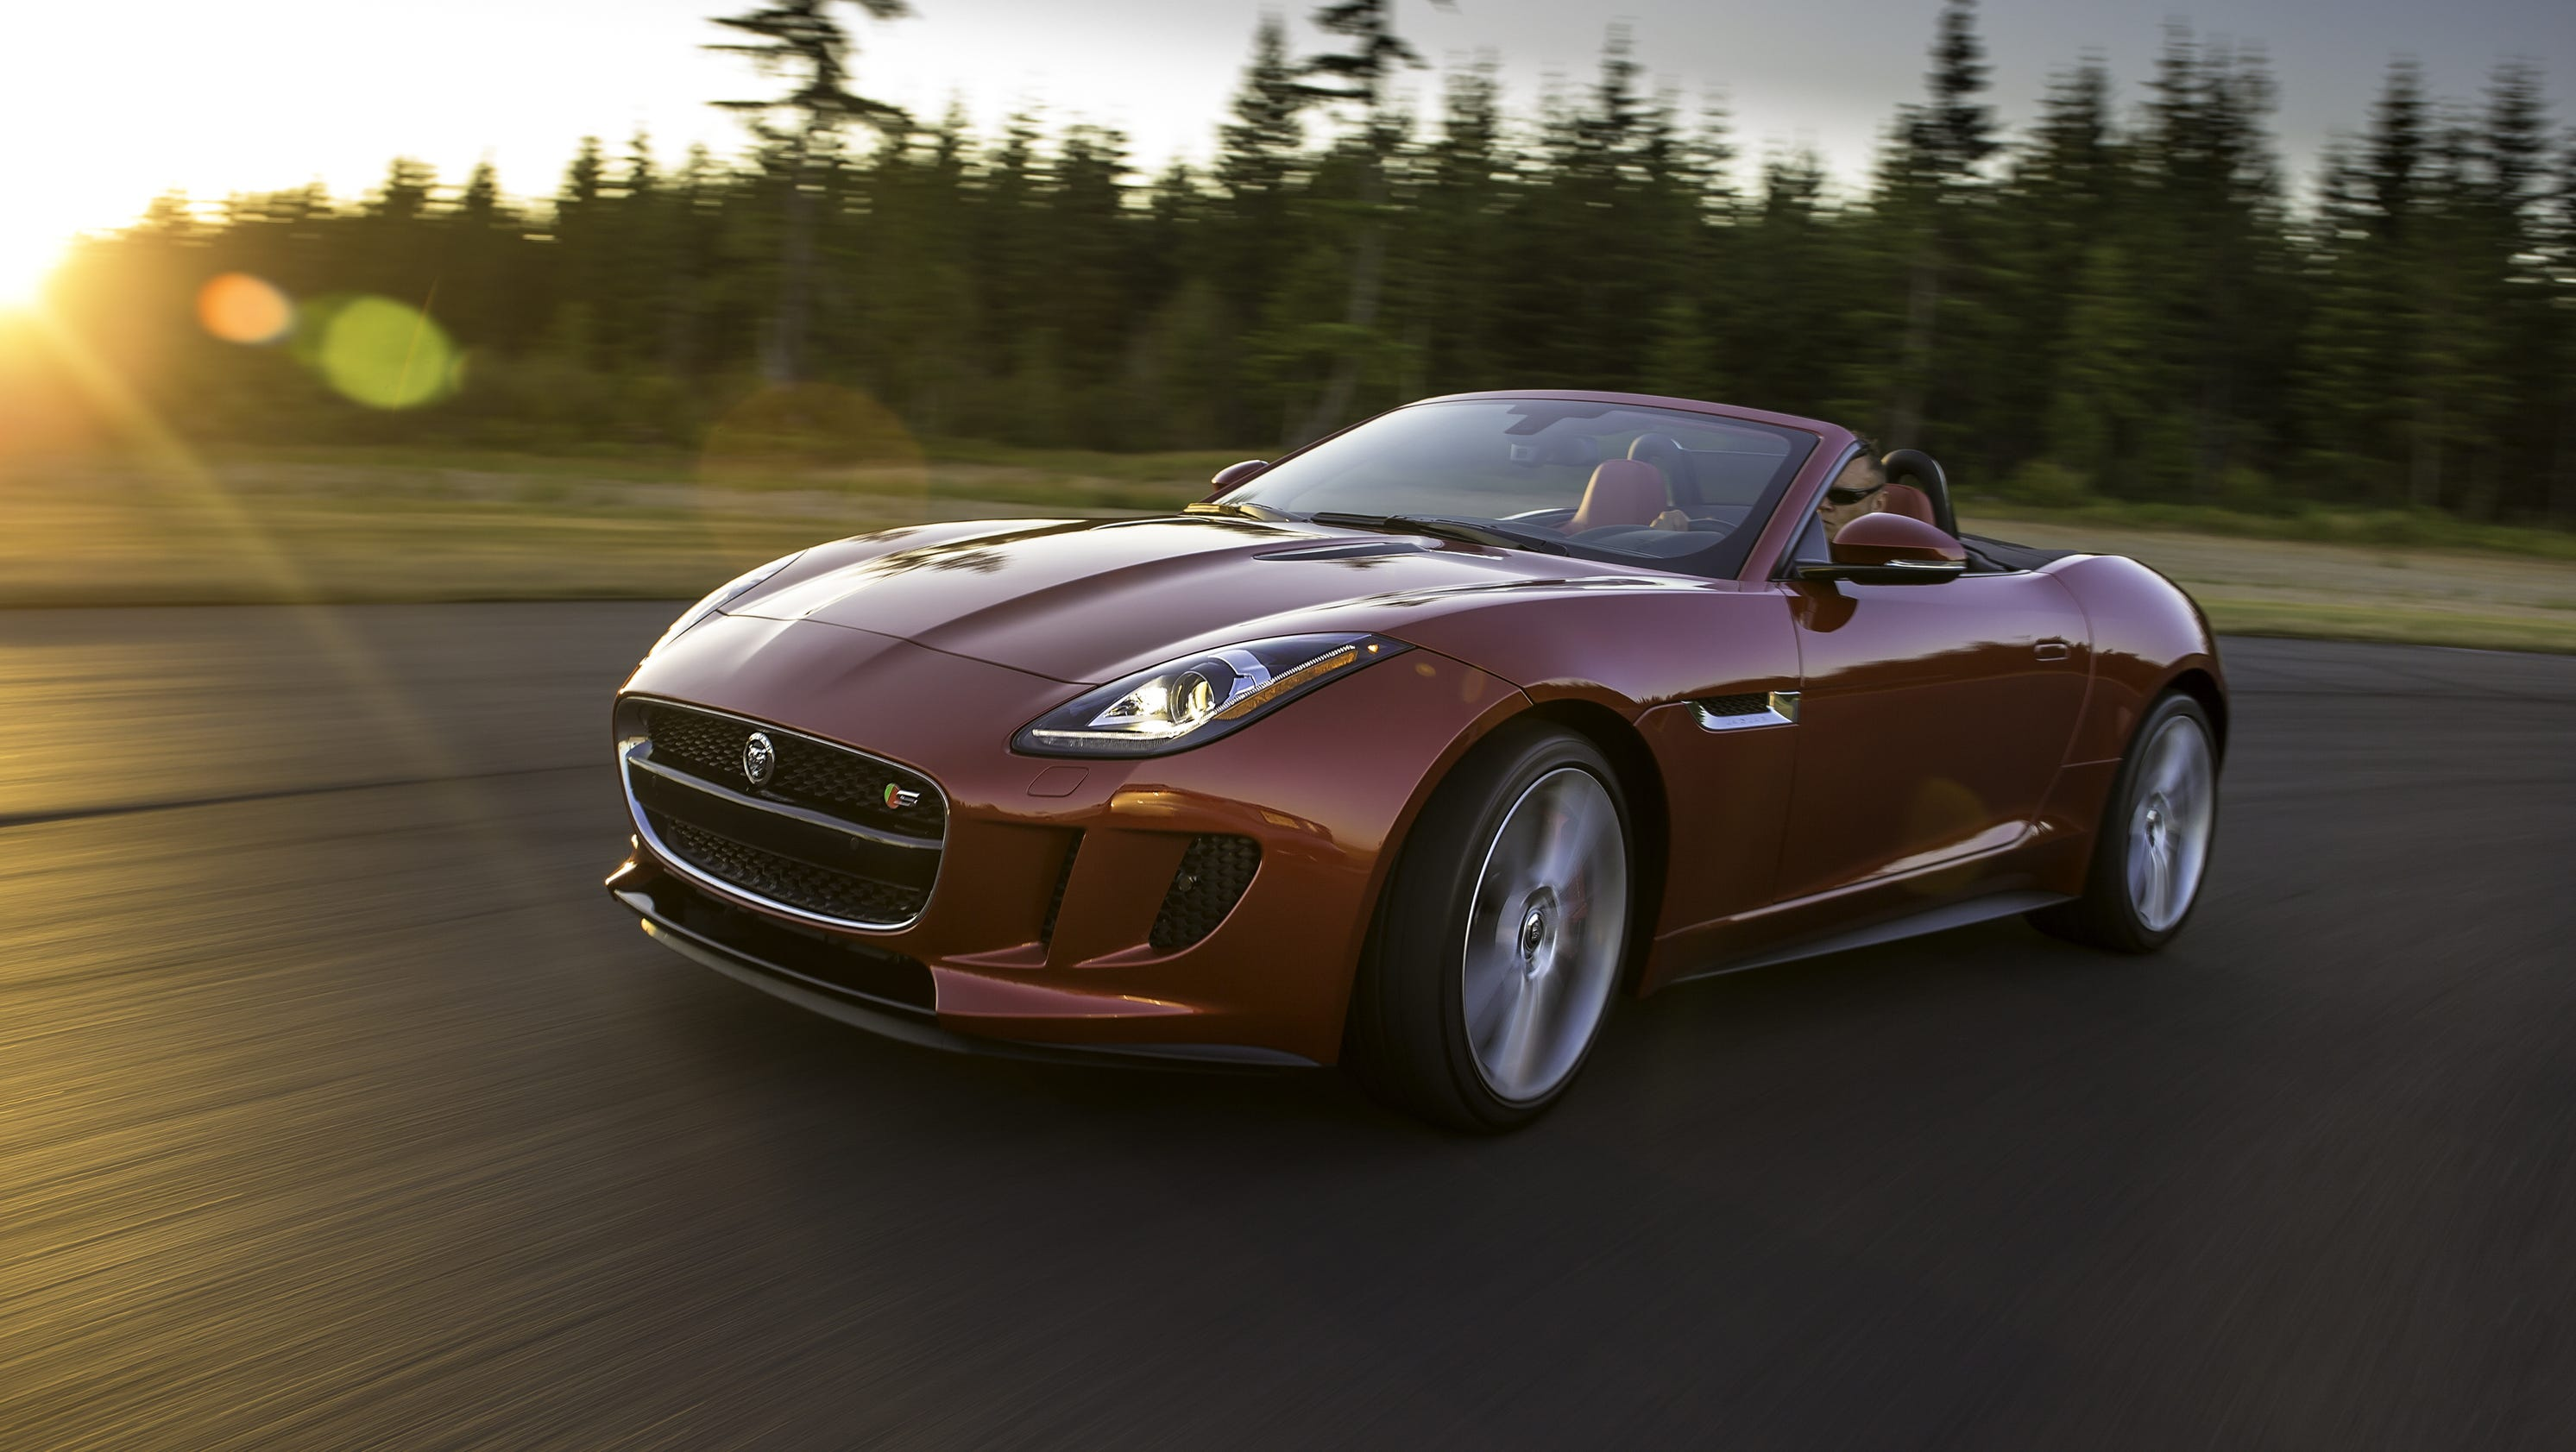 jaguar adds more goodies to f type sports car. Black Bedroom Furniture Sets. Home Design Ideas